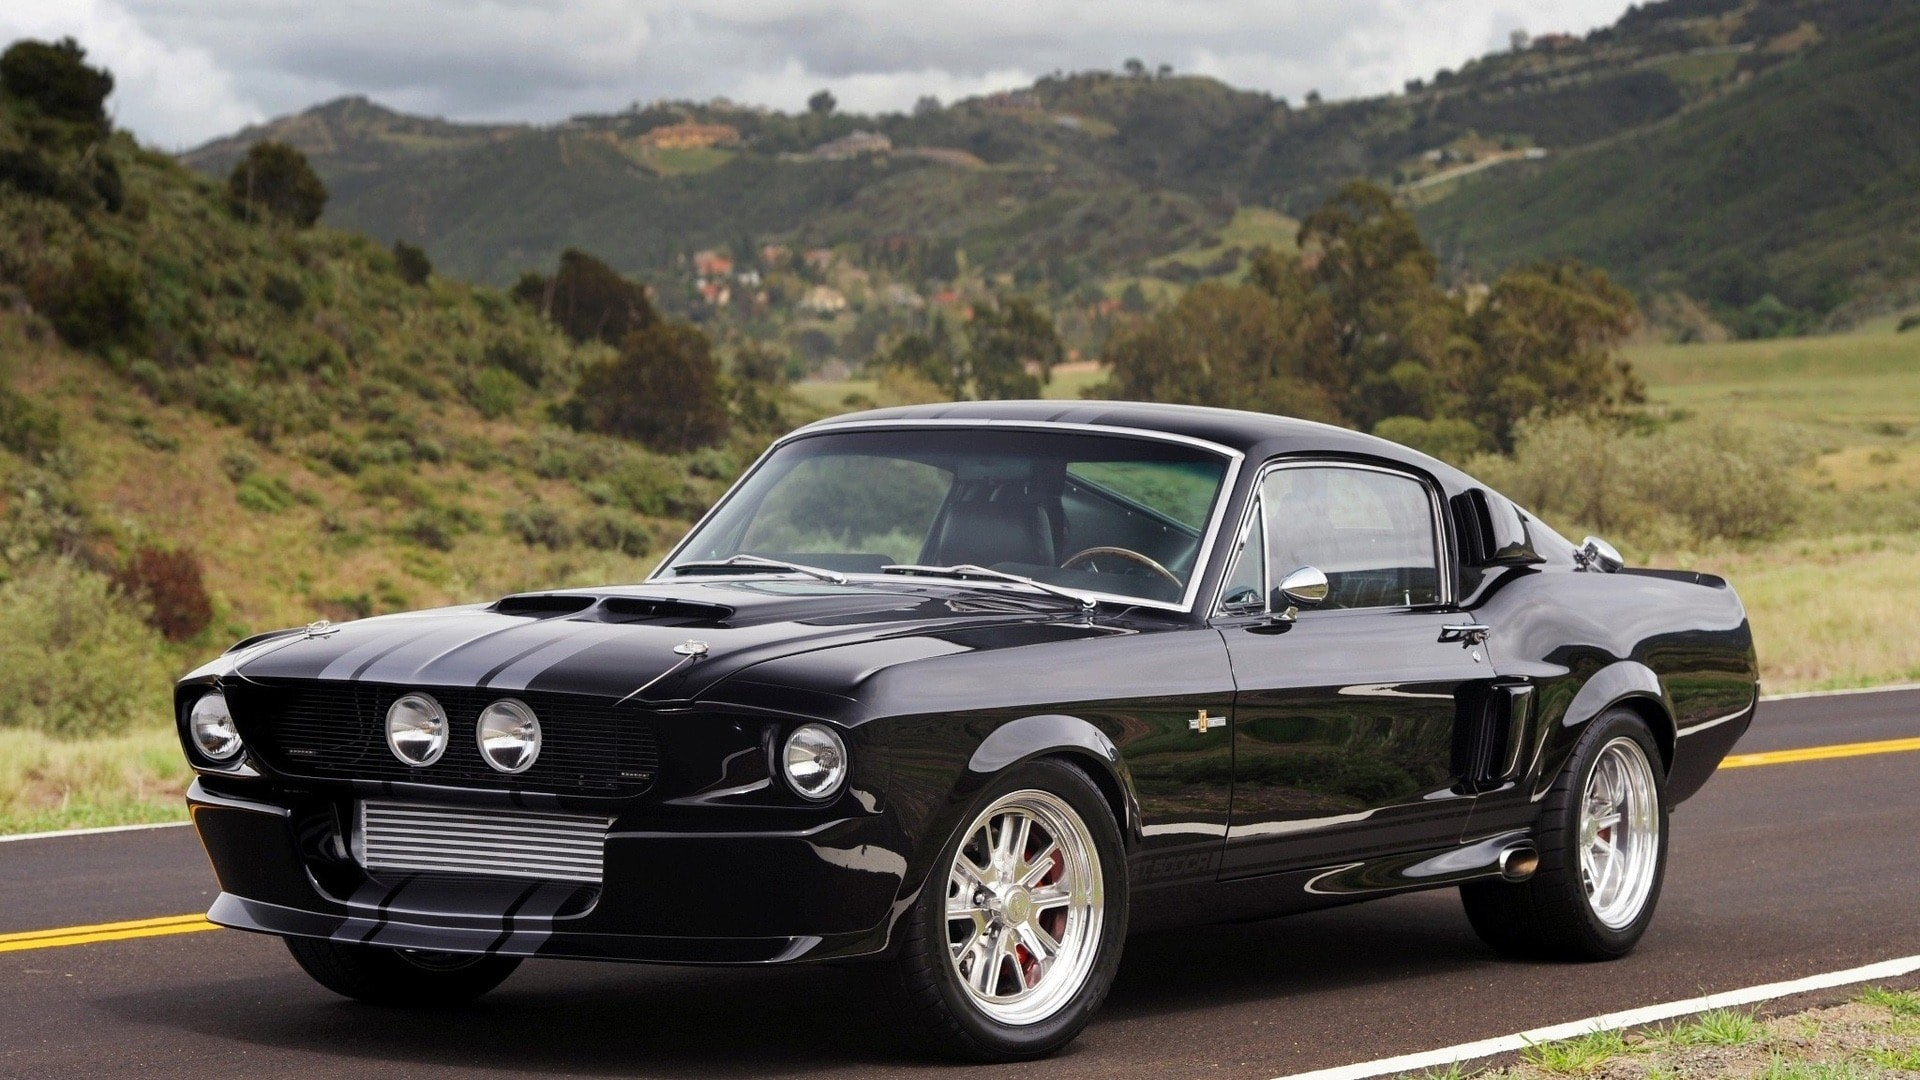 1967 Shelby GT500 Download 1967 Shelby GT500 Desktop wallpaper